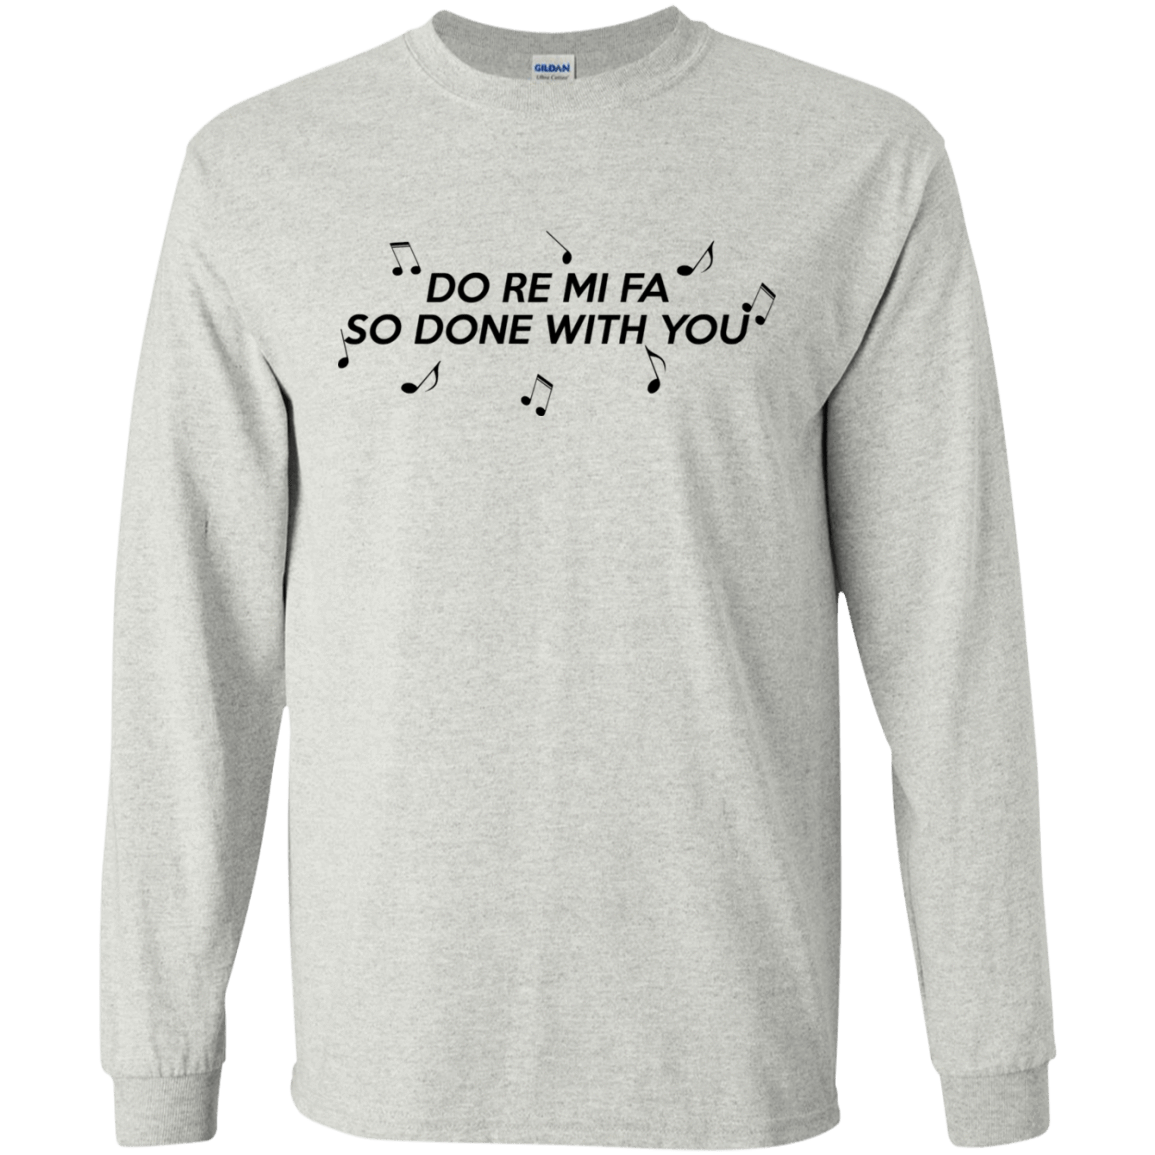 Do Re Mi Fa So Done With You 30-2112-71995120-10754 - Tee Ript